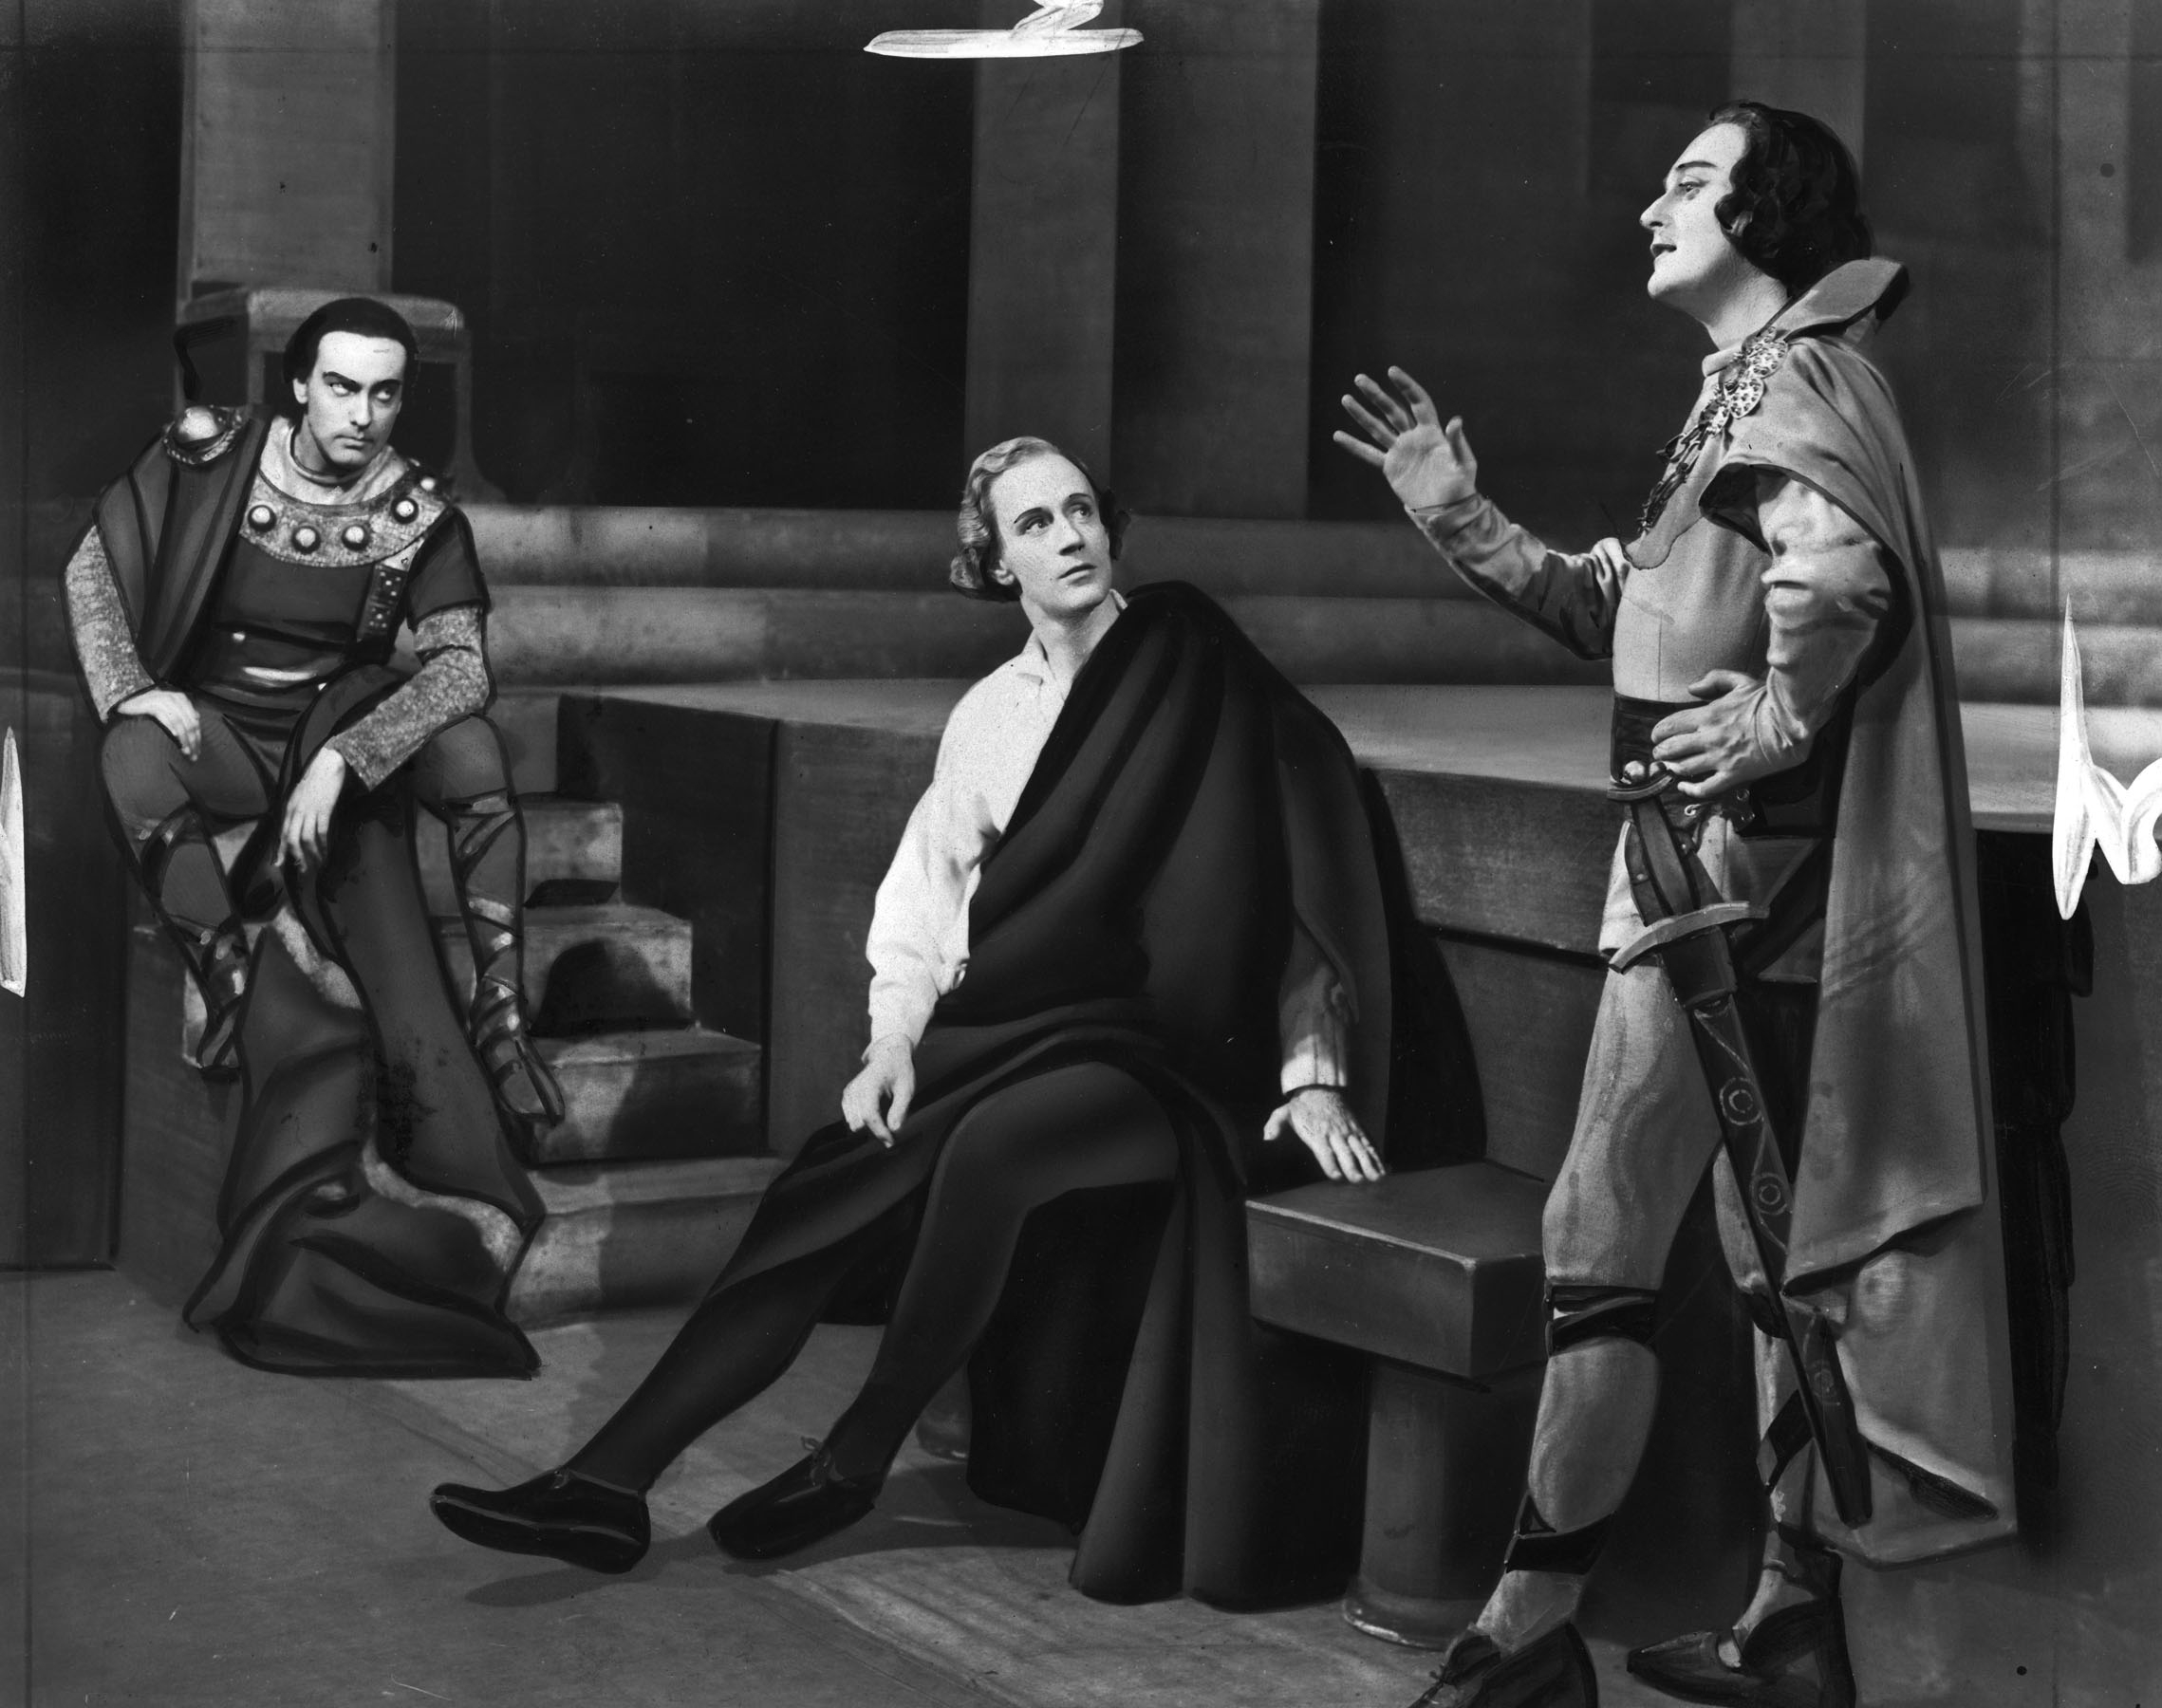 """Original caption reads: """"Joseph Holland (Horatio), Leslie Howard (Hamlet), and Albert Carroll (Osric) in """"Hamlet"""", opening at the Imperial Theatre on November 10th."""""""